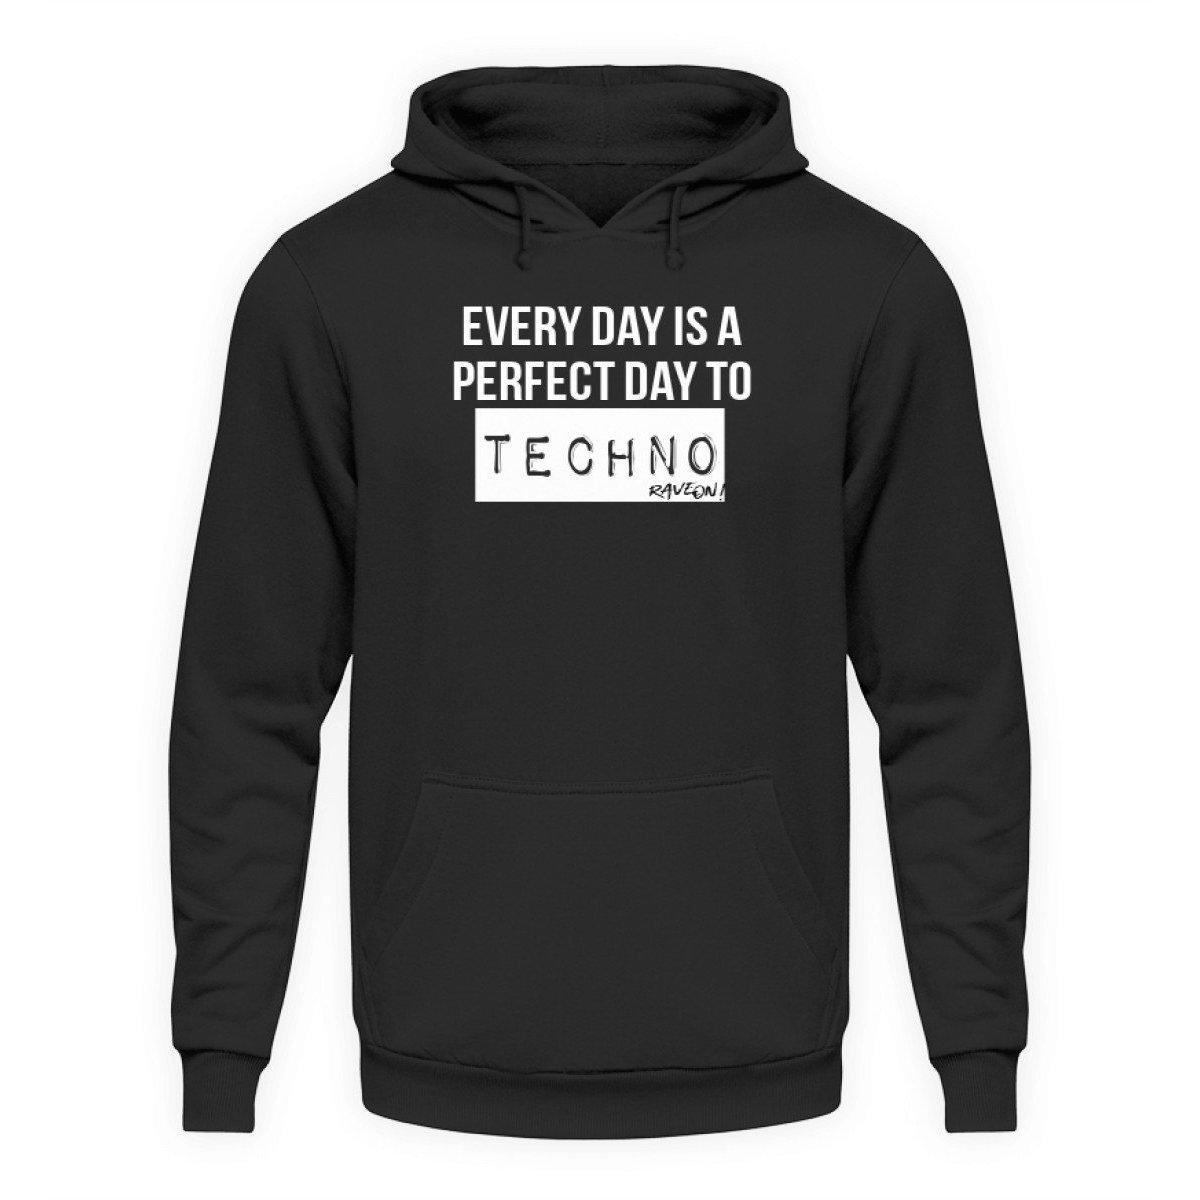 Everyday is a perfect day B. - Rave On!® - Unisex Kapuzenpullover Hoodie-Unisex Hoodie-Jet Black-L-Rave-On! I www.rave-on.shop I Deine Rave & Techno Szene Shop I Design - Everyday is a perfect day B. - Rave On!® - Sexy Festival Streetwear , Clubwear & Raver Style